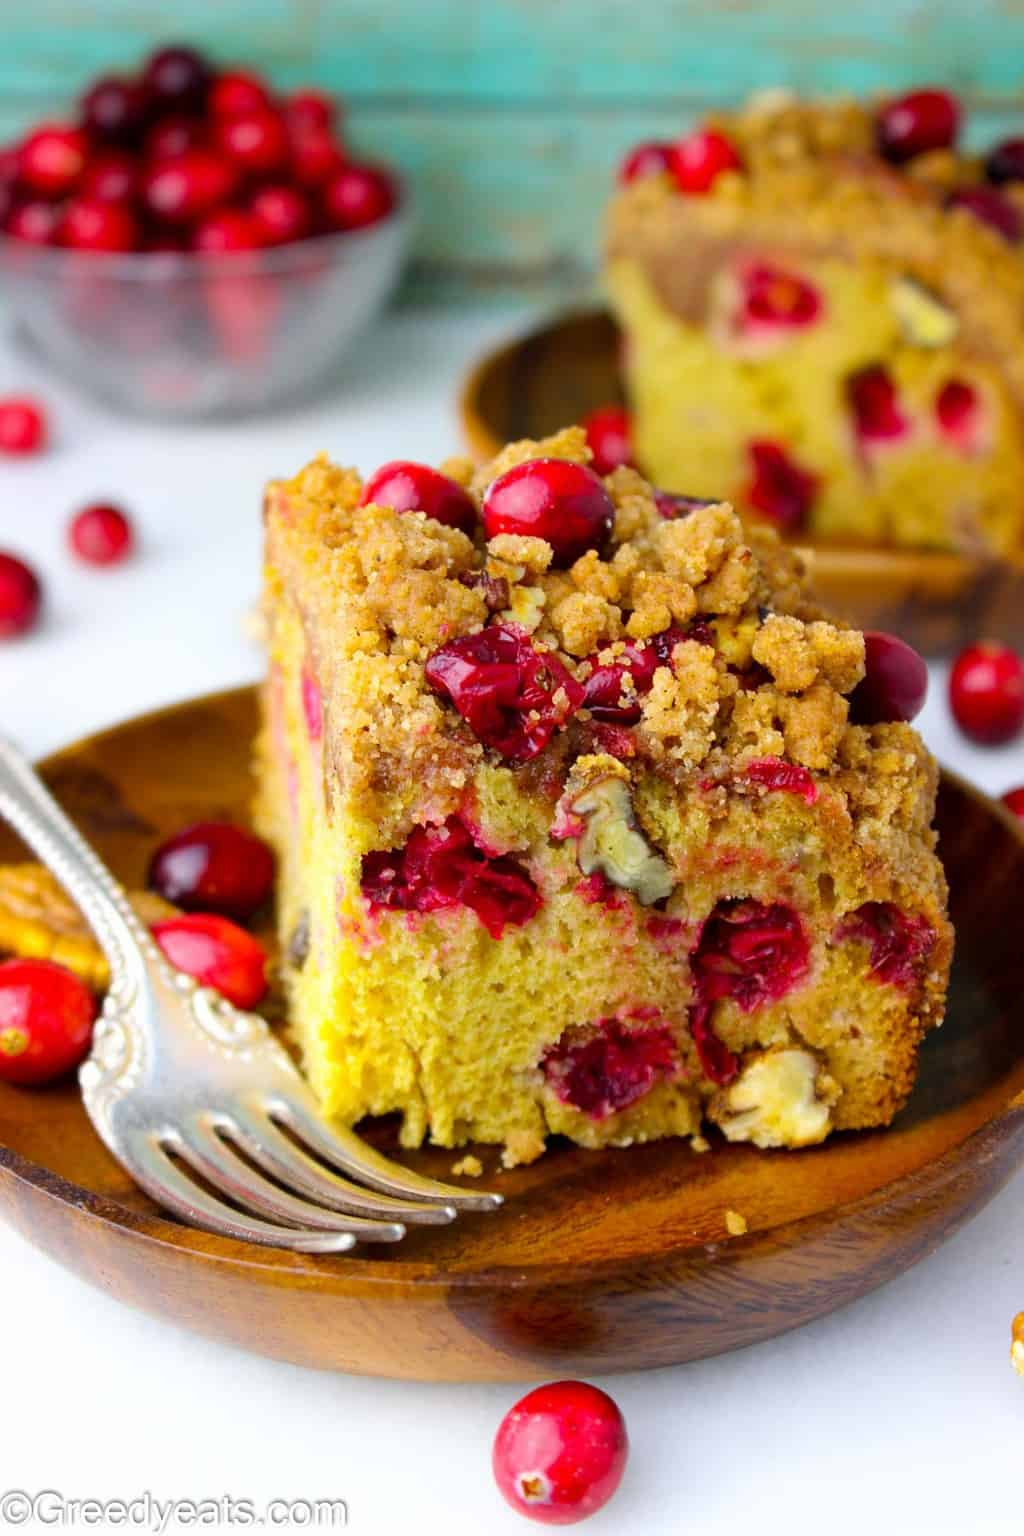 Two slices of Easy Buttermilk Coffee Cake with cranberries and toasty pecans.